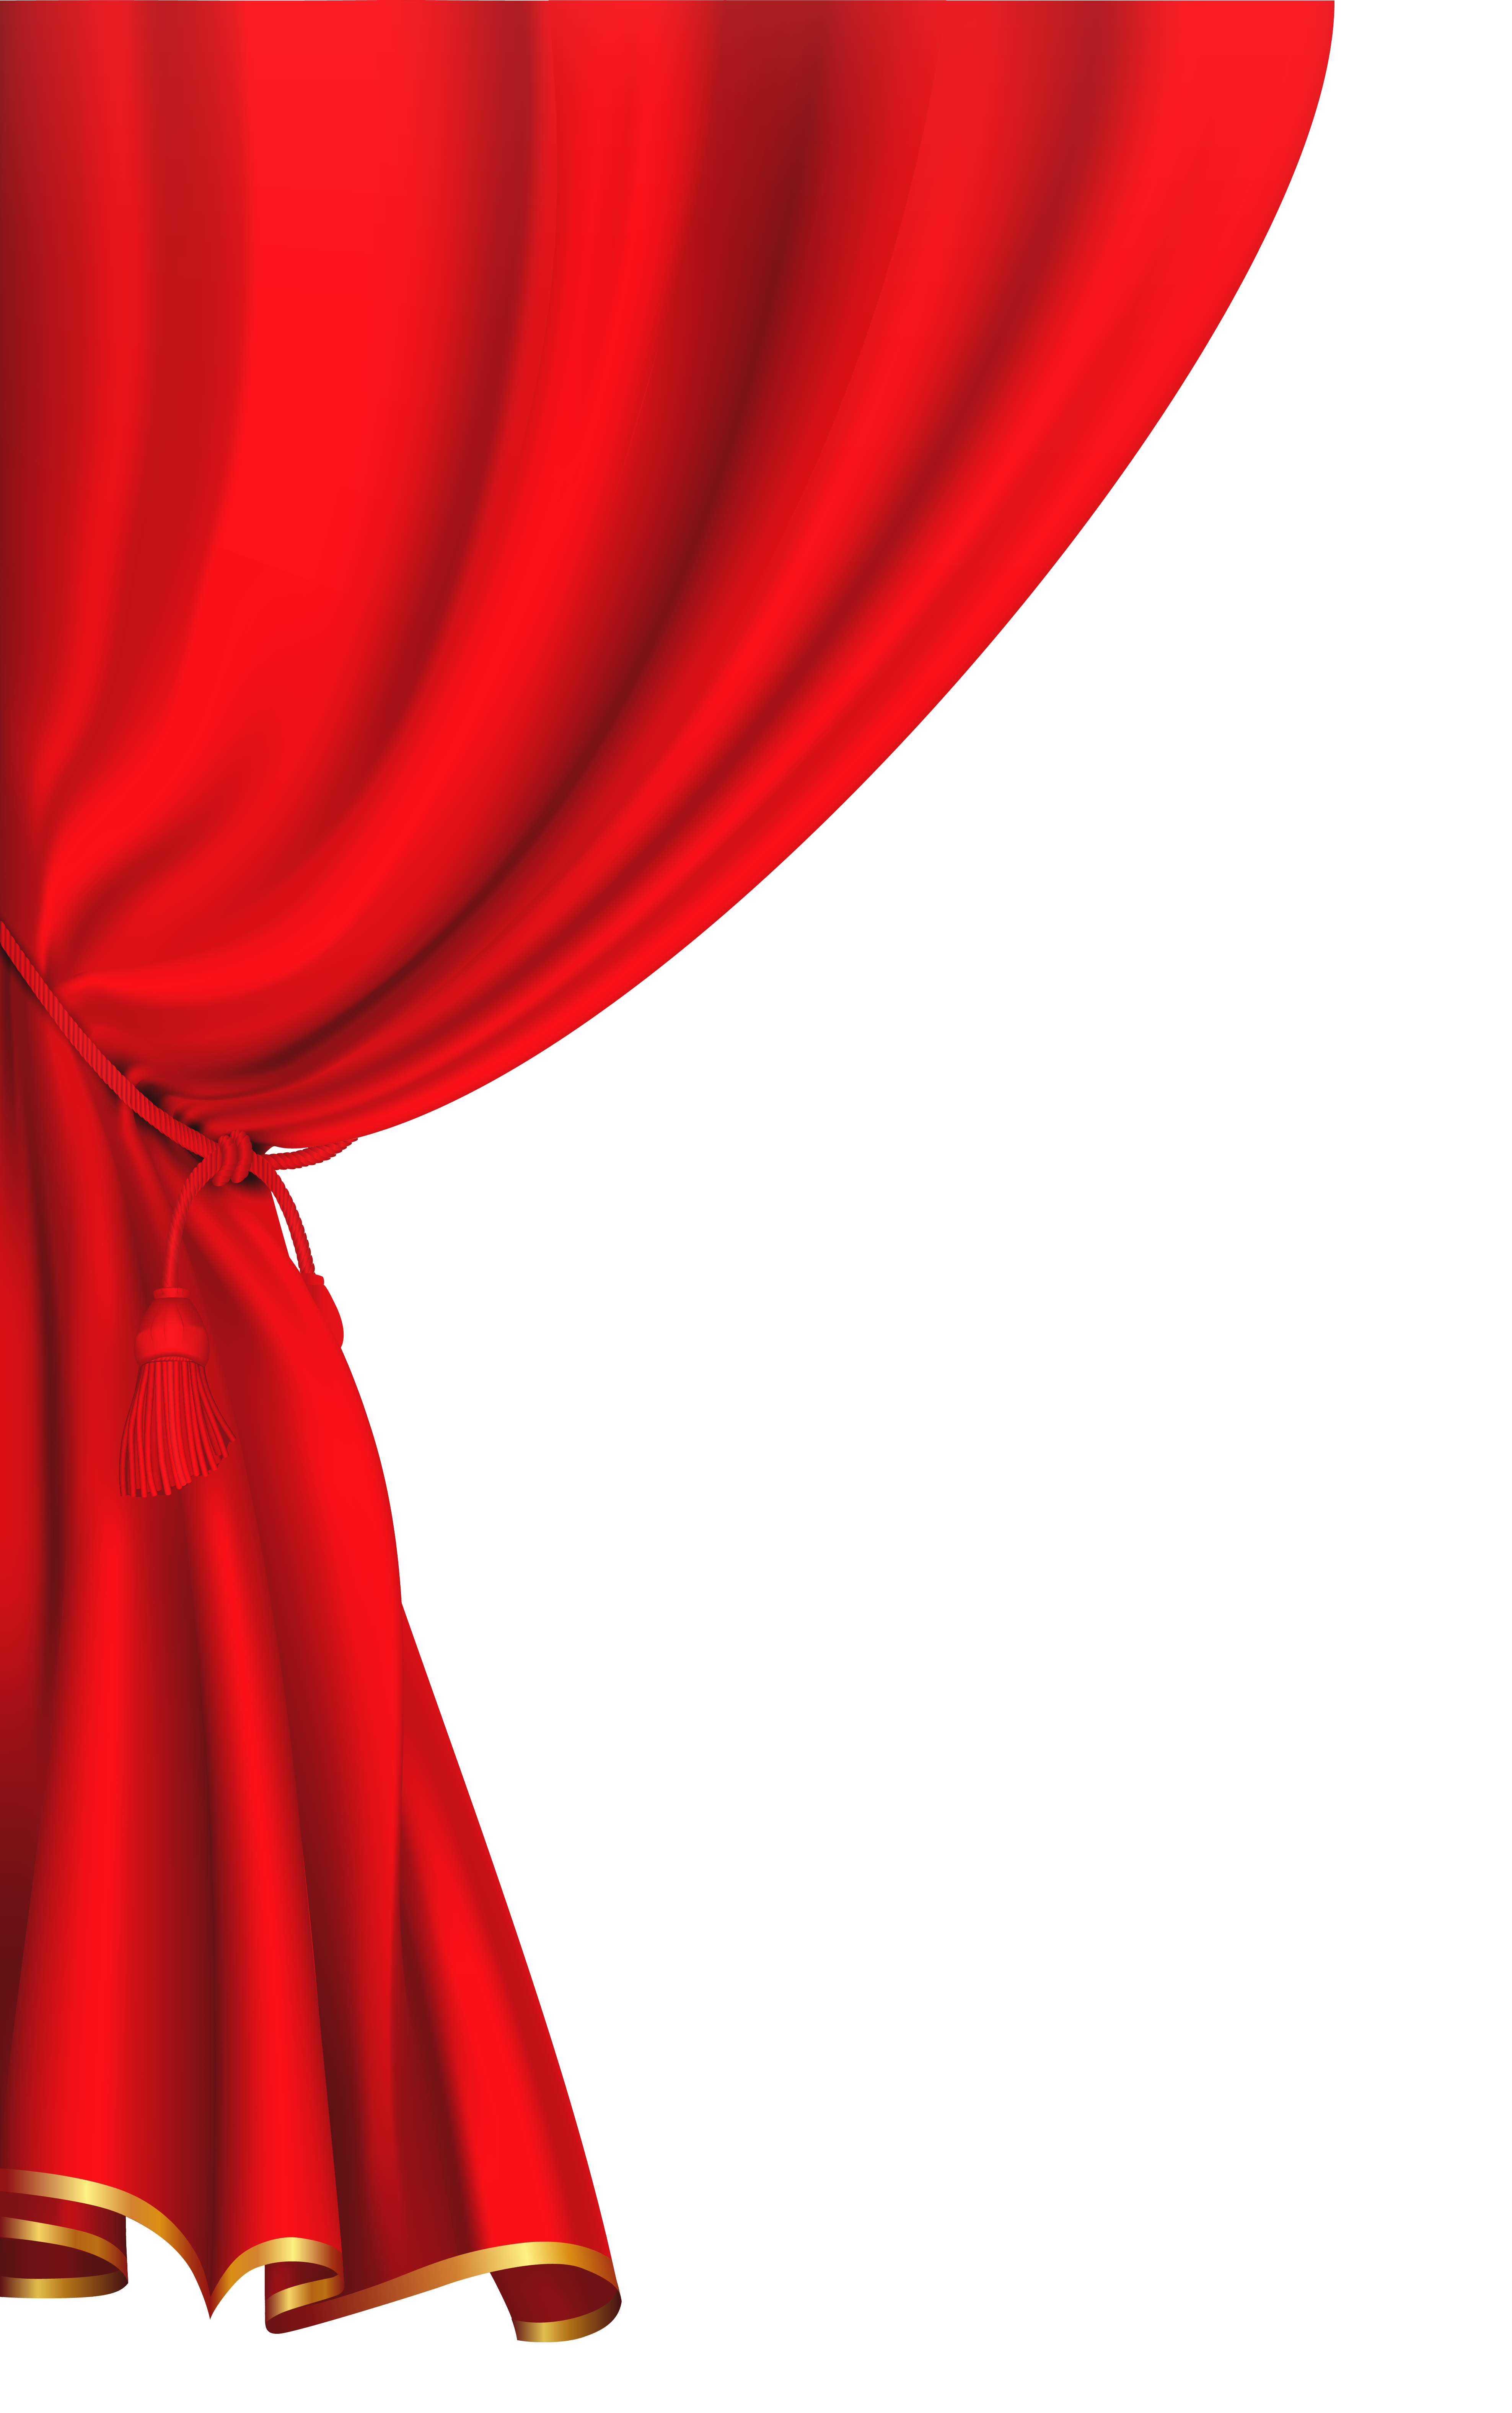 Red curtain image bedroomcurtainspurple. Curtains clipart drapery